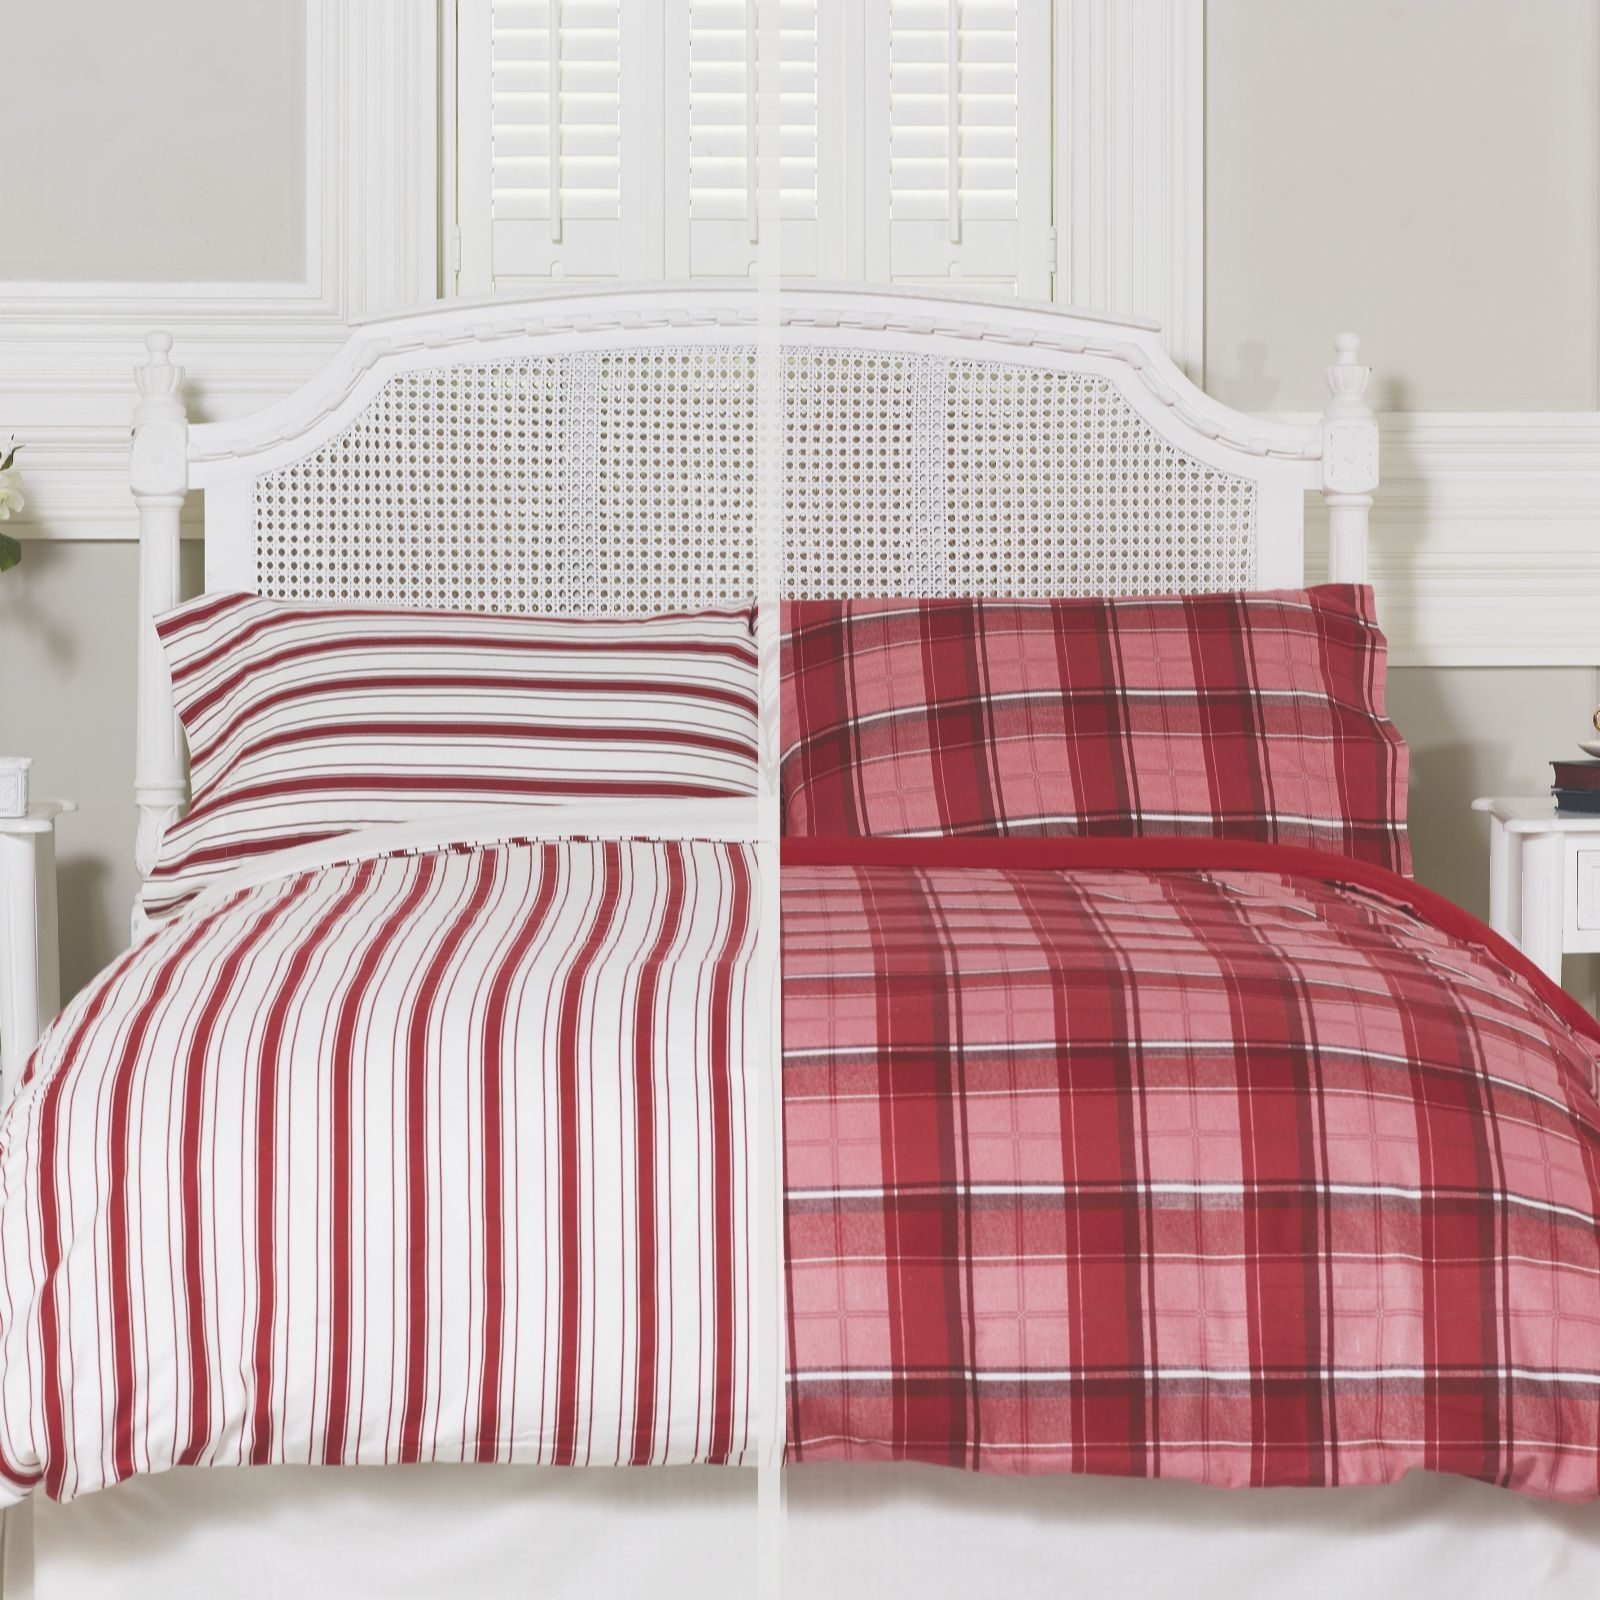 805121 Northern Nights Set Of 2 Tartan Stripe Reversible Flannel 4 Piece Duvet Sets Qvc Price 72 00 114 00 Introducto Duvet Sets Flannel Bedding Duvet